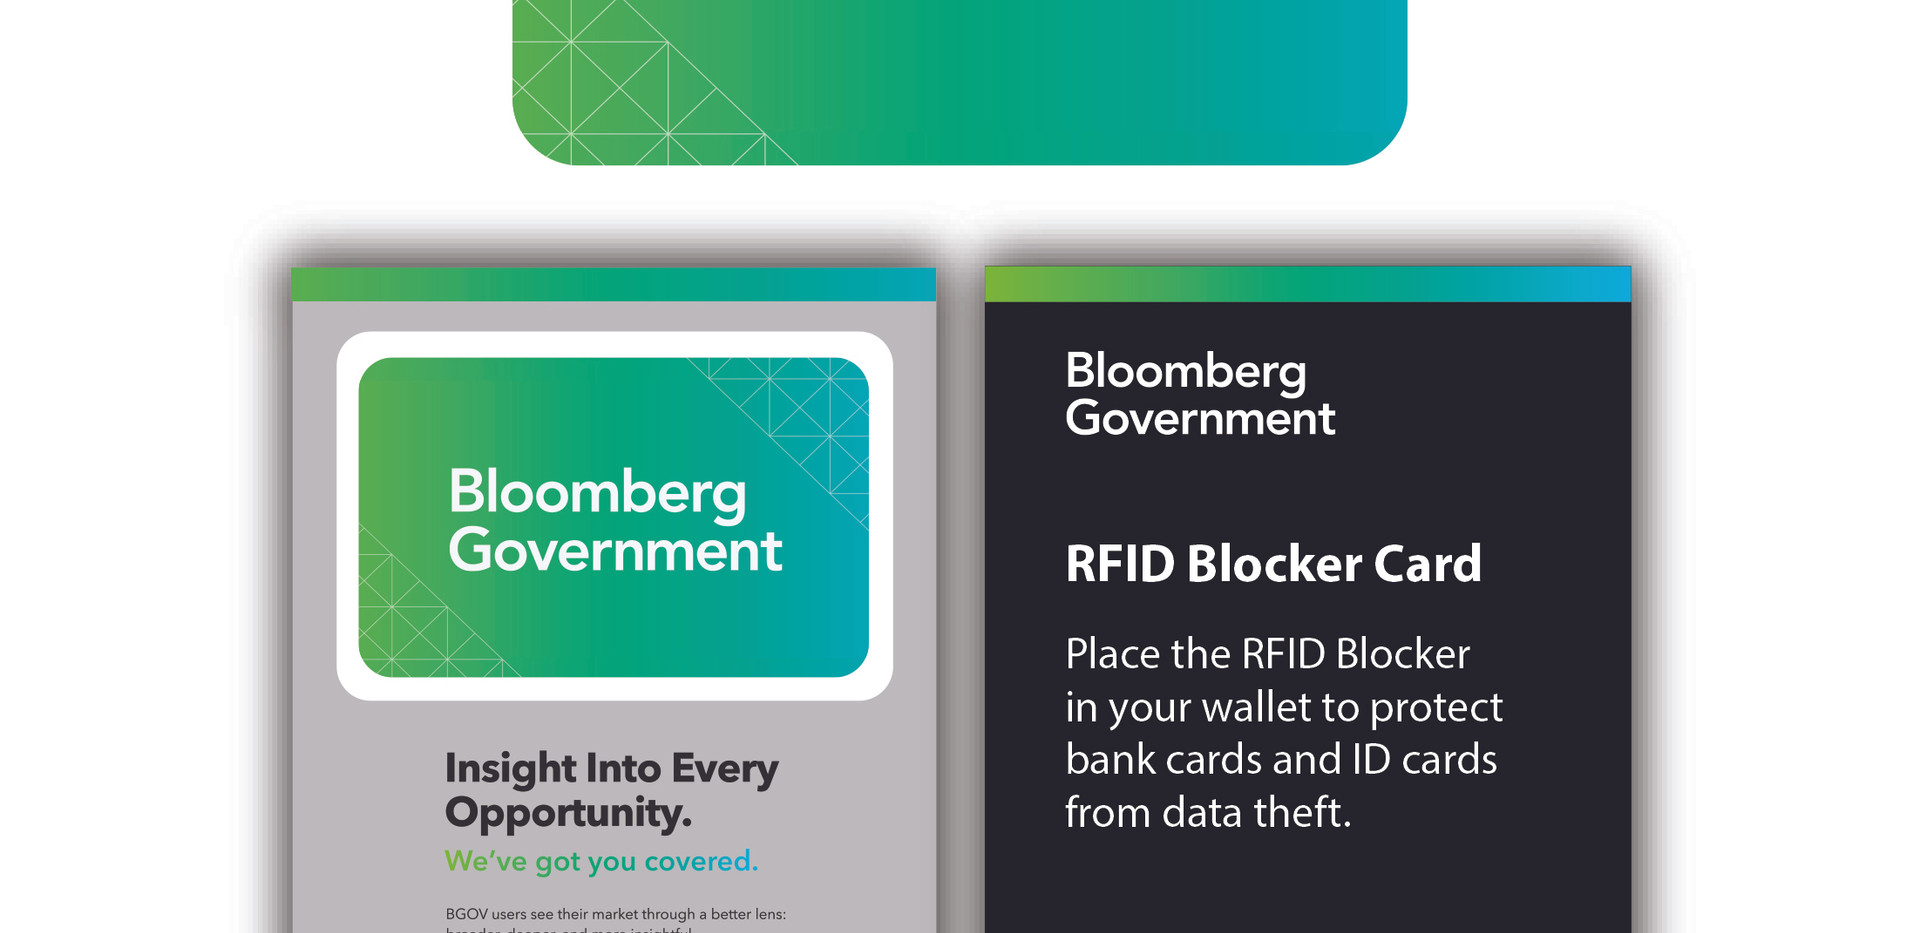 Bloomberg Government RFID Card Custom 1.